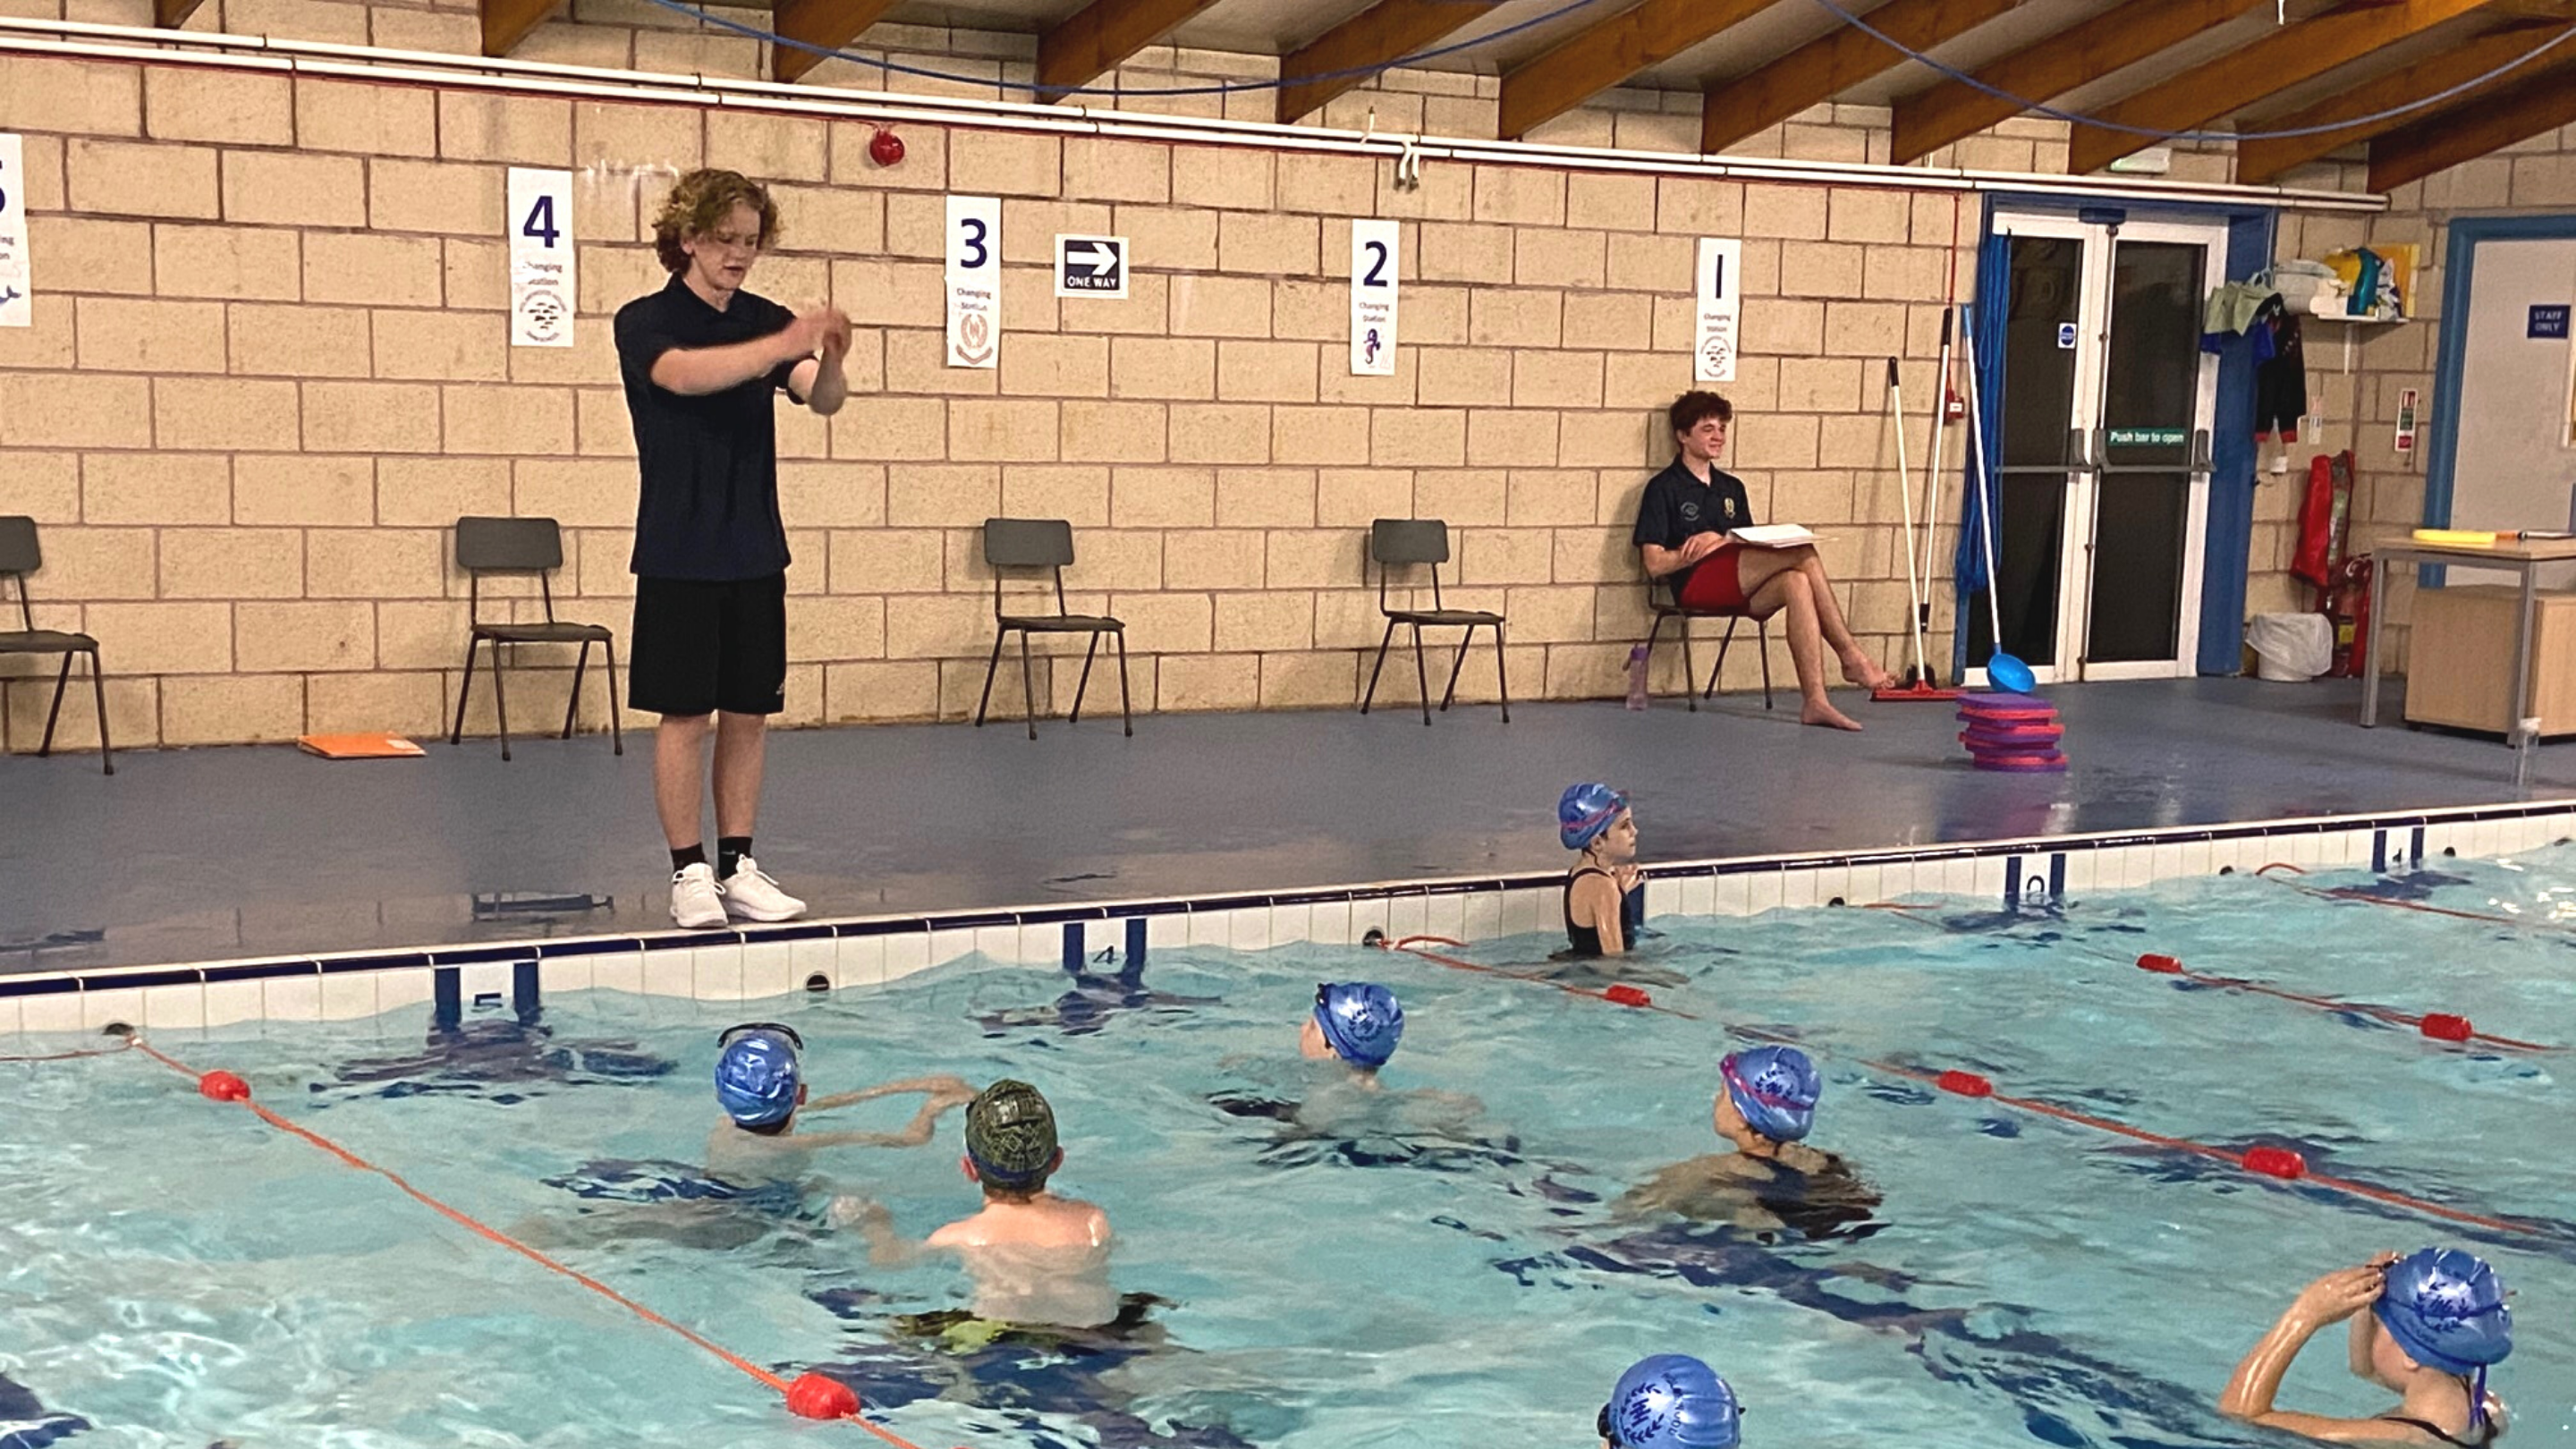 Becoming a Swimming Teacher during COVID-19: Henry's story